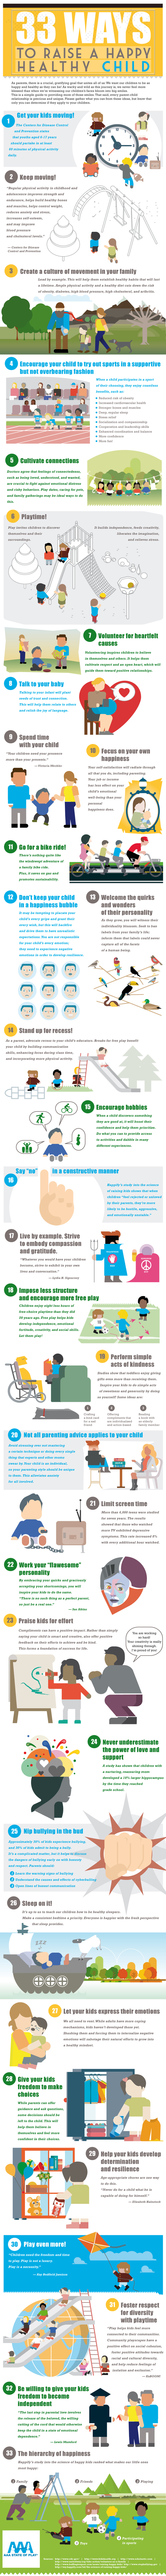 How to Raise a Happy, Healthy Children: 33 Crucial Tips - Infographic